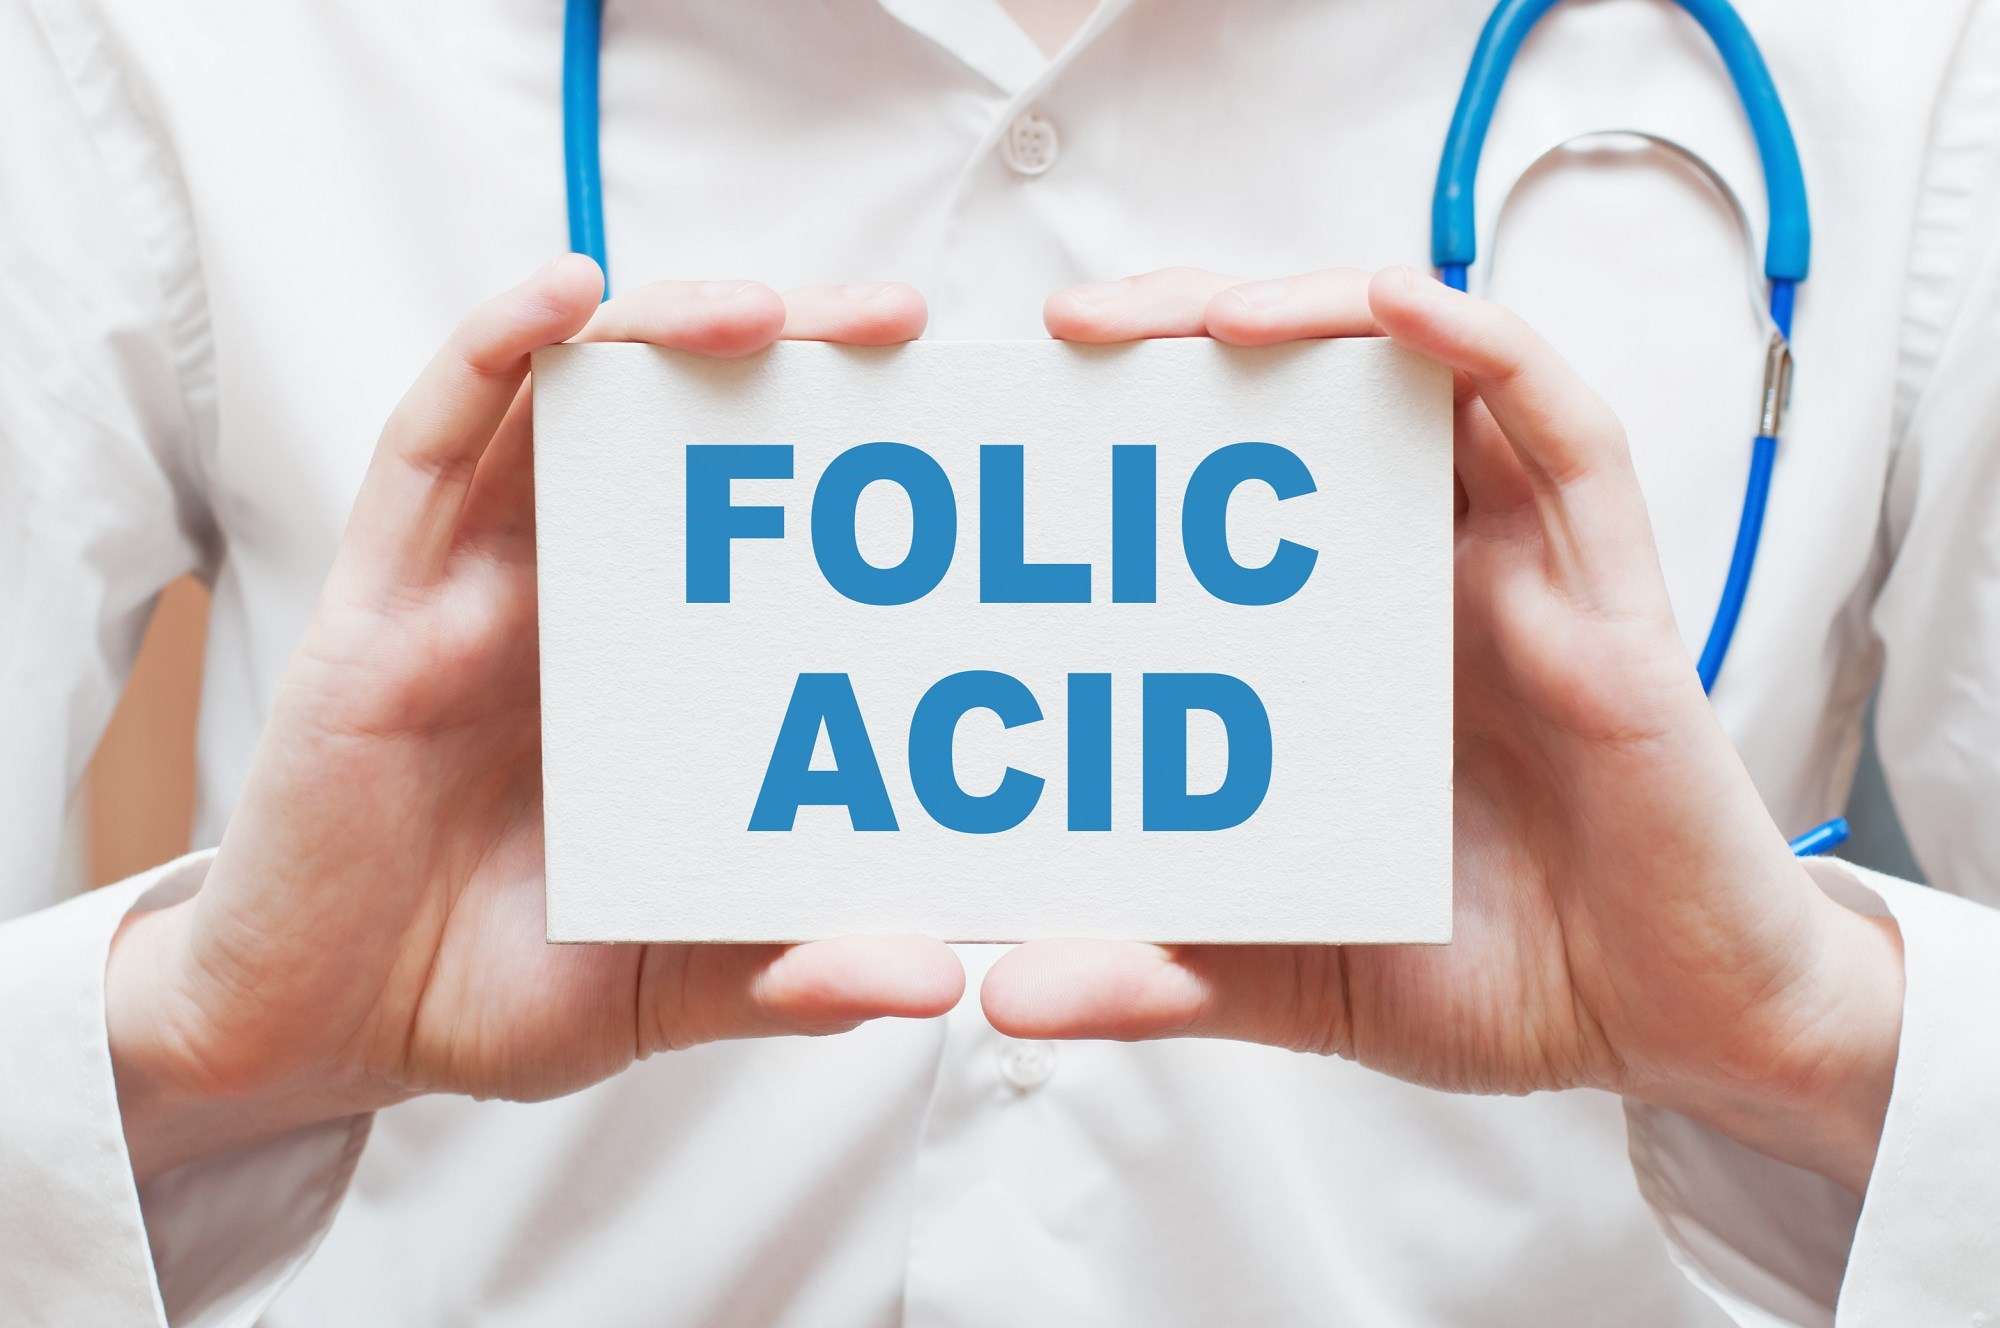 Population-Wide Folic Acid Fortification May Protect Against Psychosis